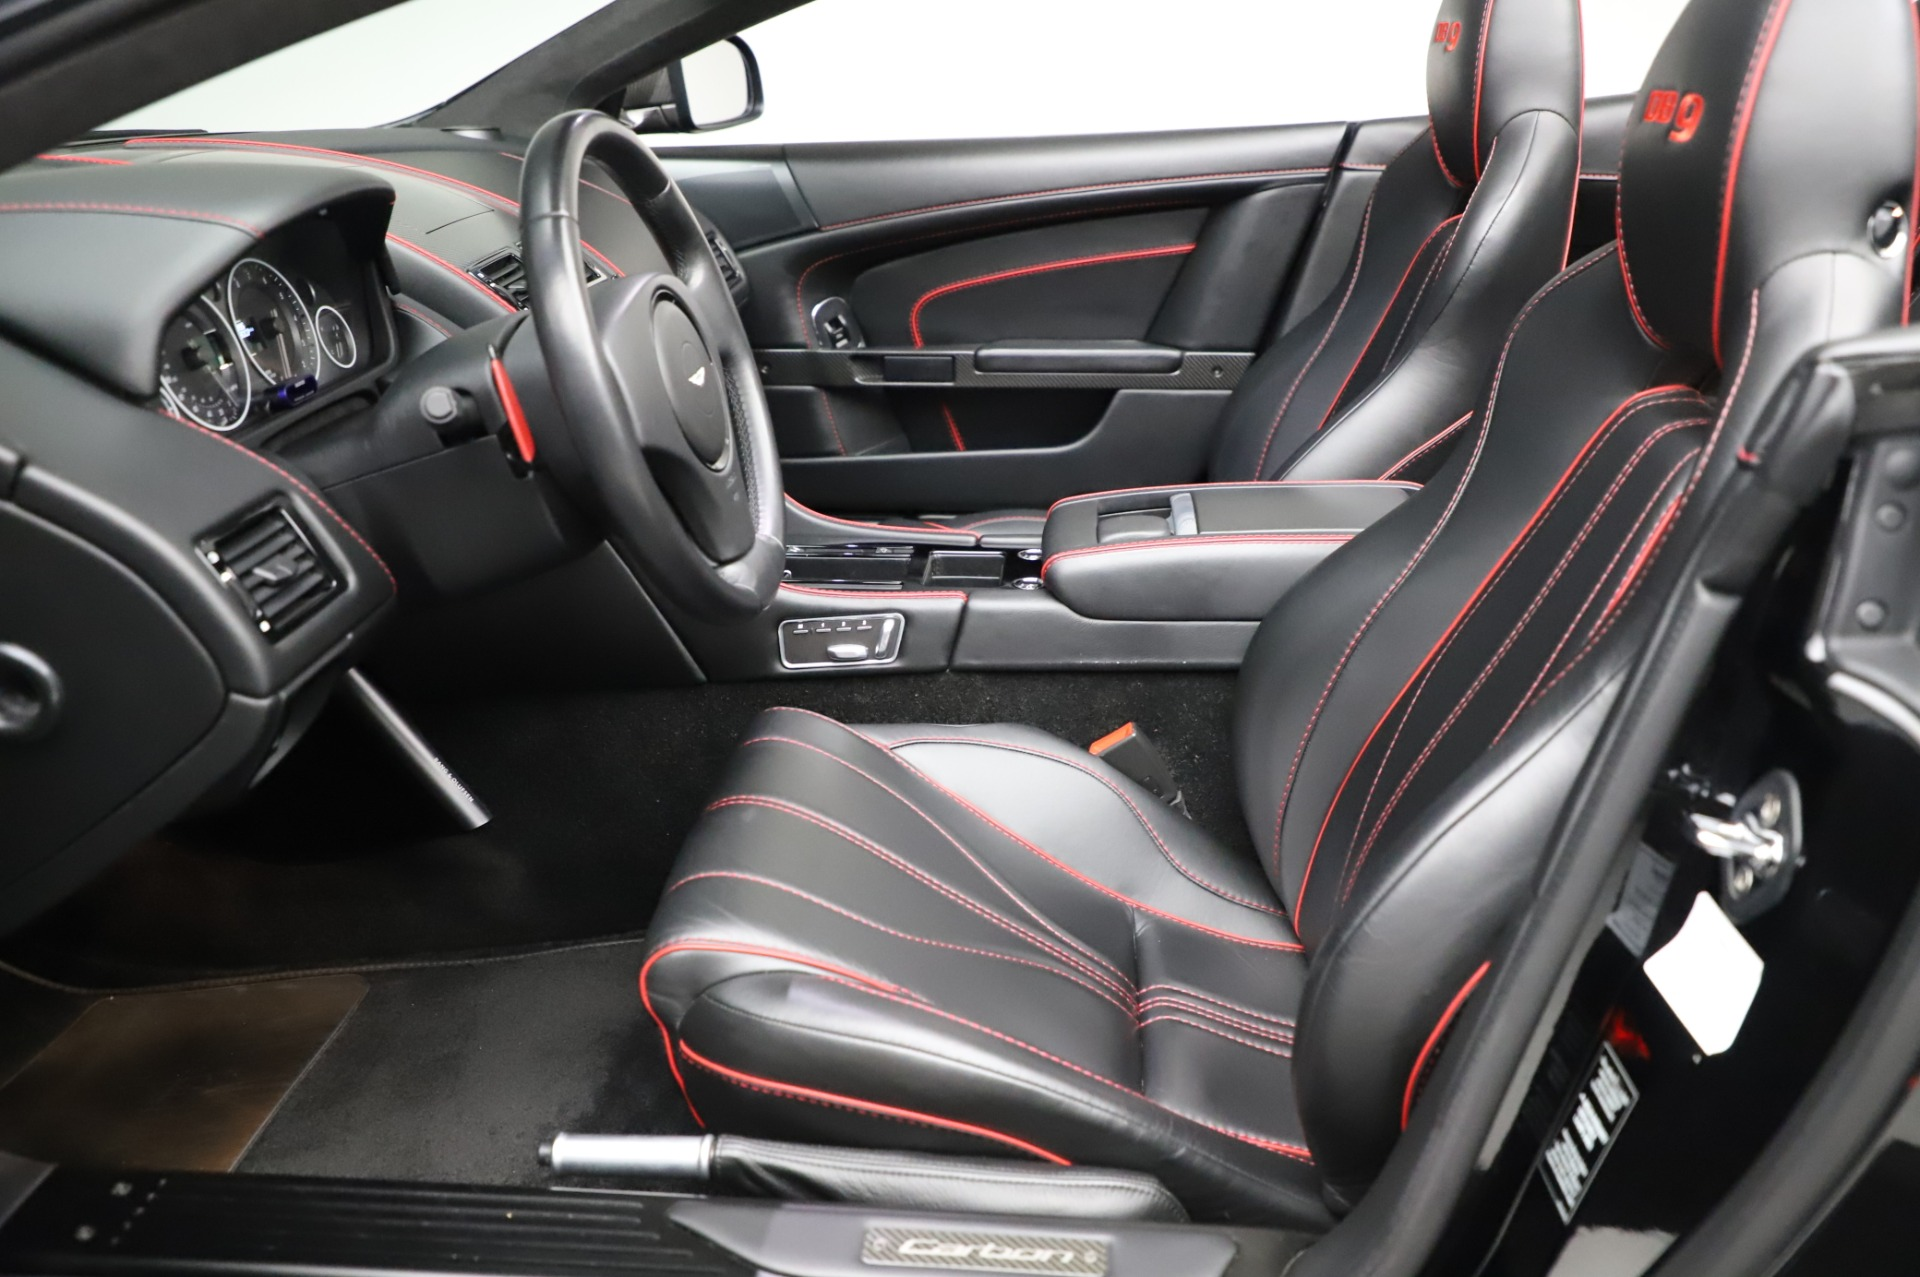 Used 2015 Aston Martin DB9 Carbon Edition Volante For Sale In Westport, CT 1919_p20